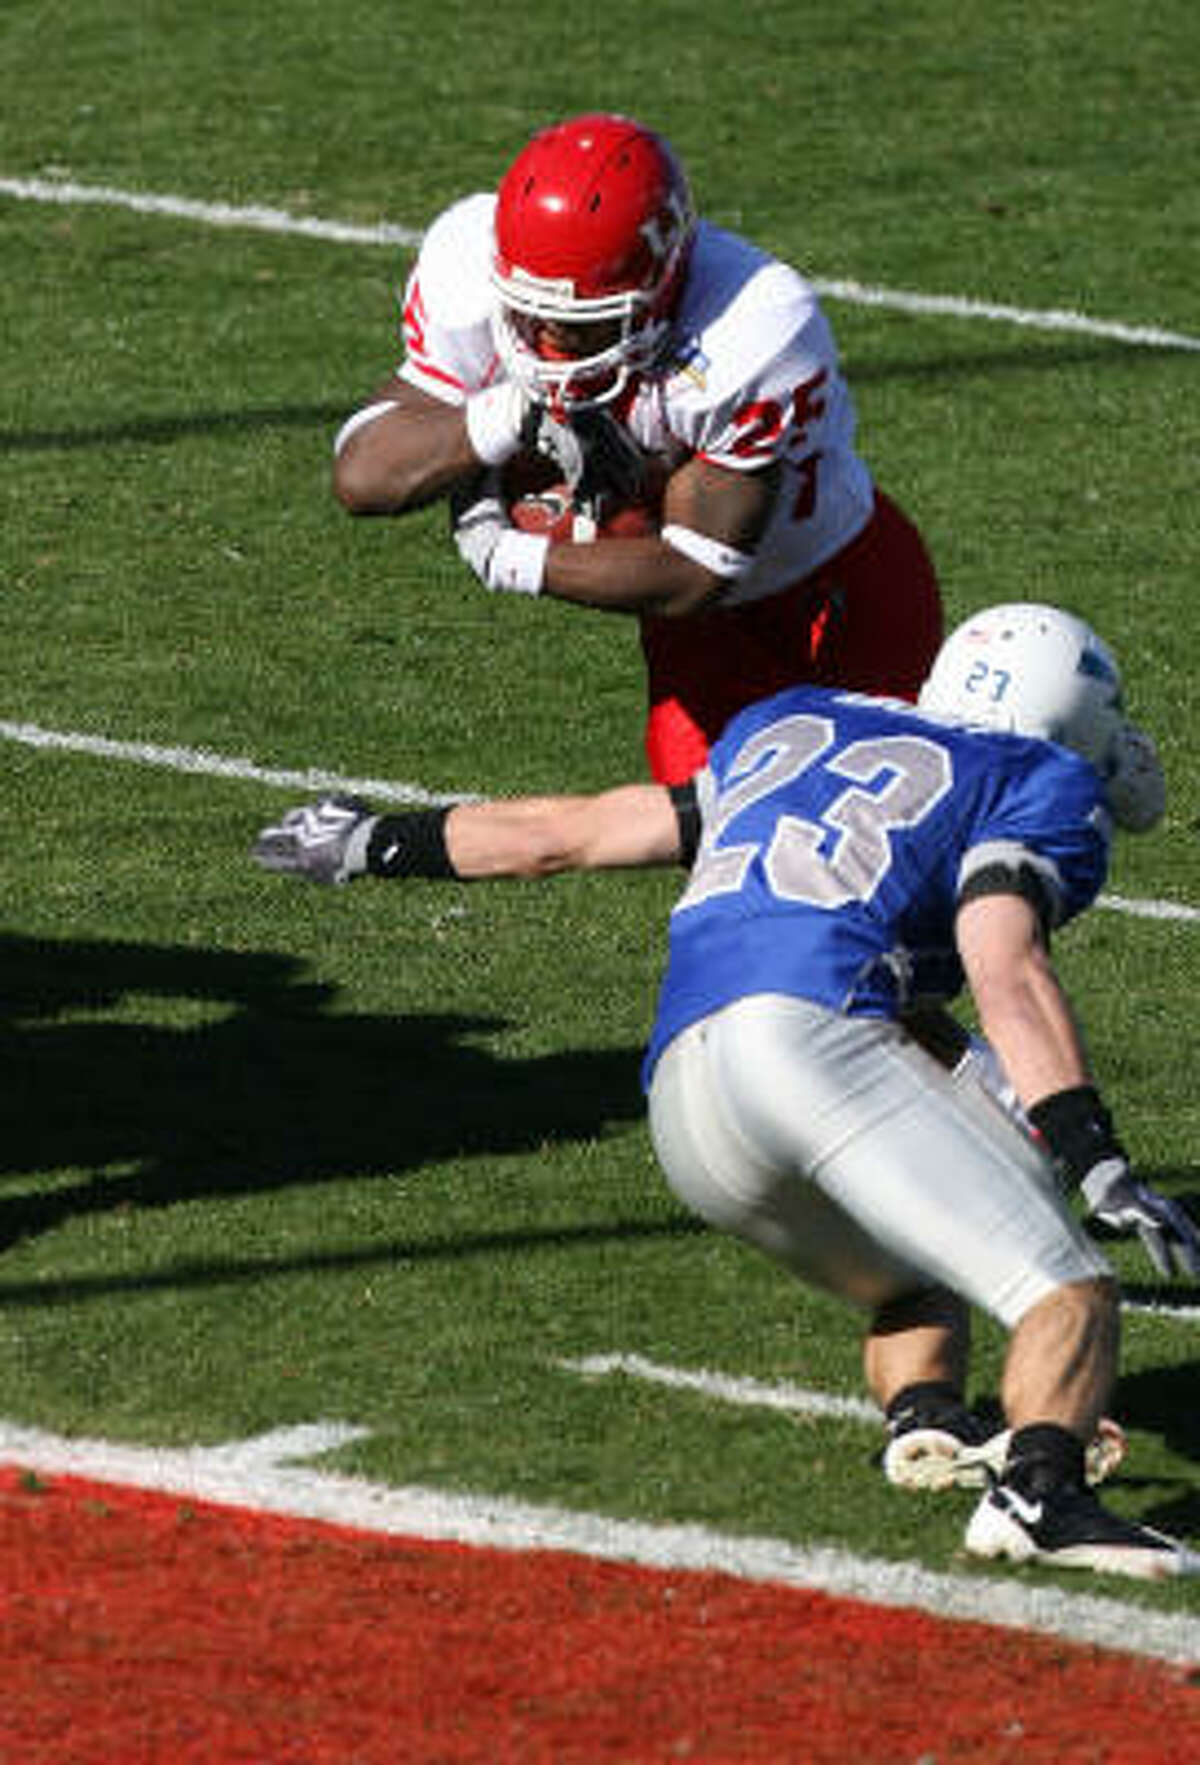 Houston running back Bryce Beall breaks a tackle on the way to a first-quarter touchdown.